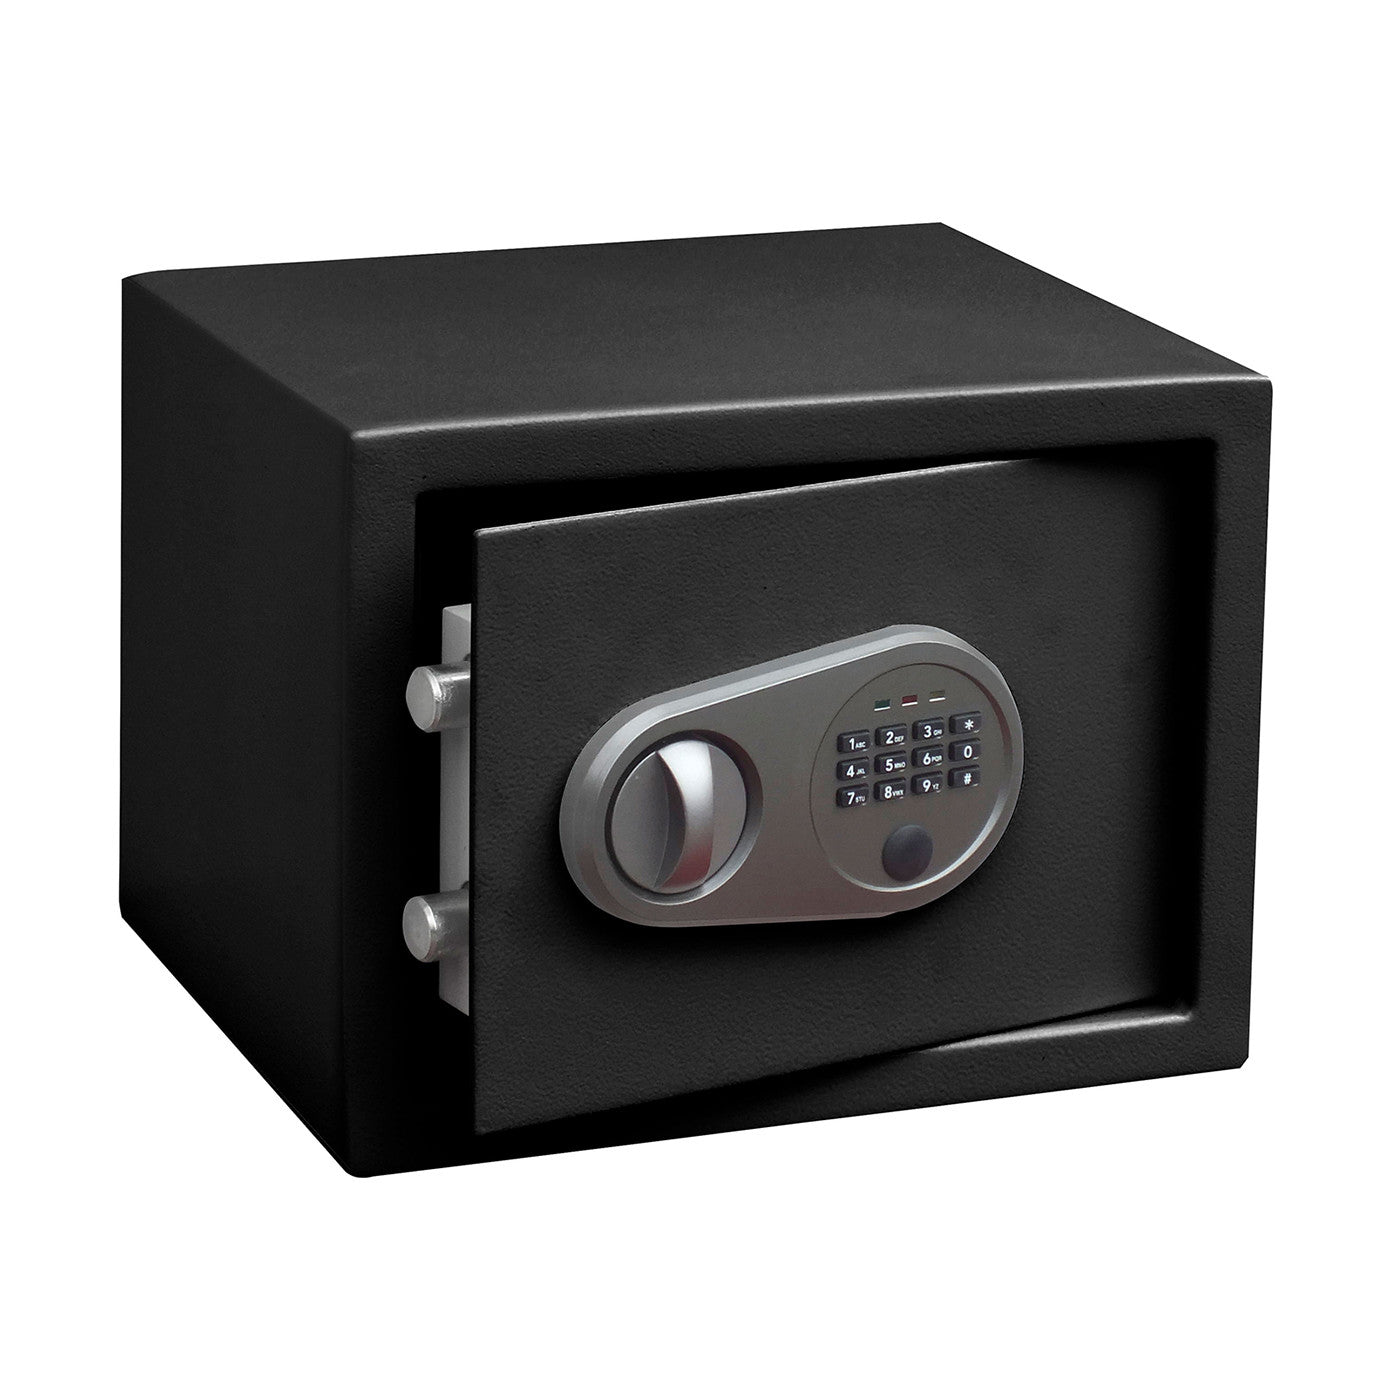 Qualarc Steel Personal Safe With Digital Keypad 5 Cubic